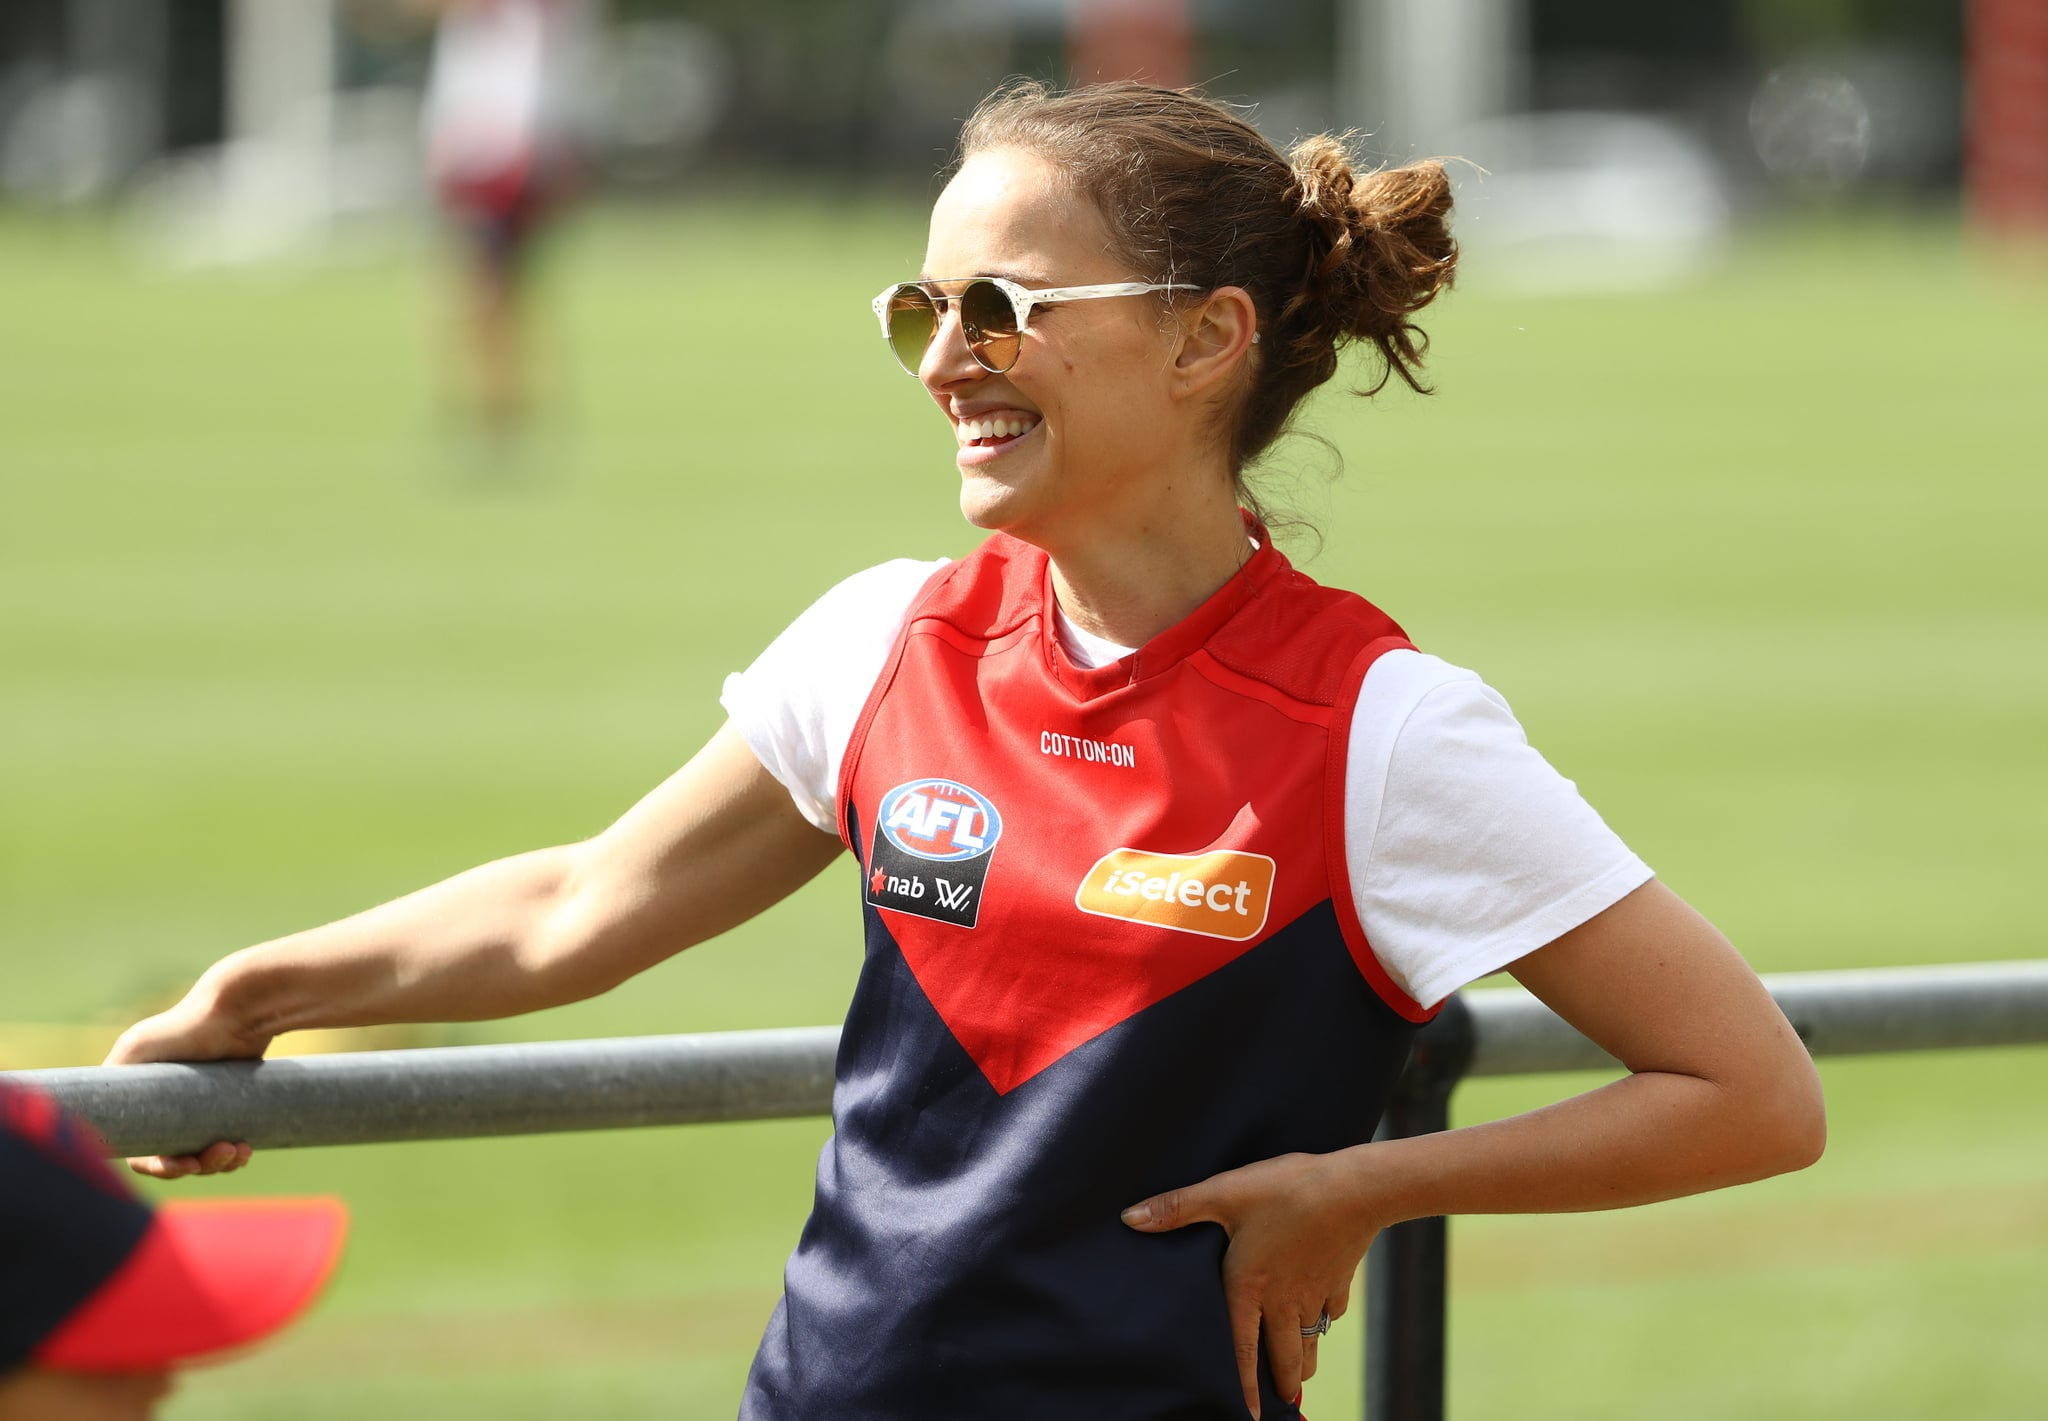 MELBOURNE, AUSTRALIA - NOVEMBER 28: Actress Natalie Portman is seen during a Melbourne Demons AFL training session at Gosch's Paddock on November 28, 2018 in Melbourne, Australia. (Photo by Robert Cianflone/Getty Images)